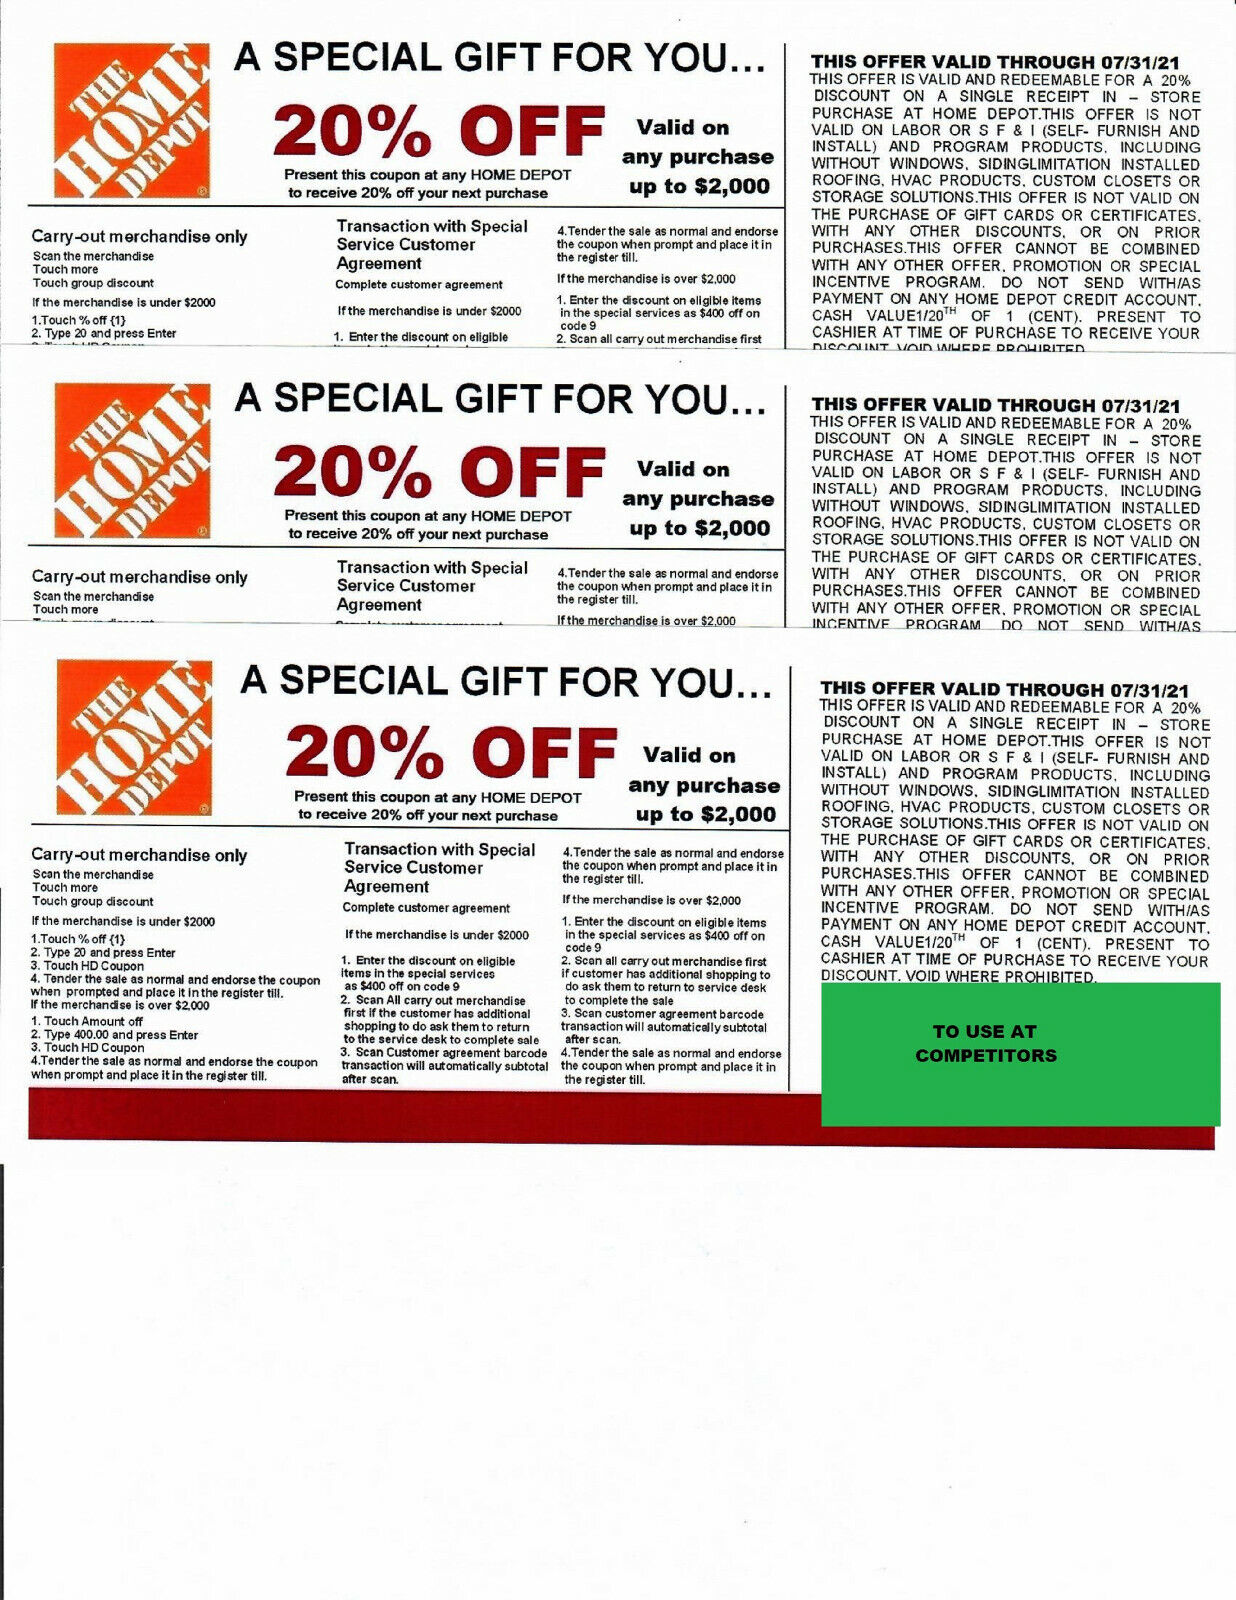 4 20 OFF HOME DEPOT Competitors Coupon Exp 07/31/21 - $20.00